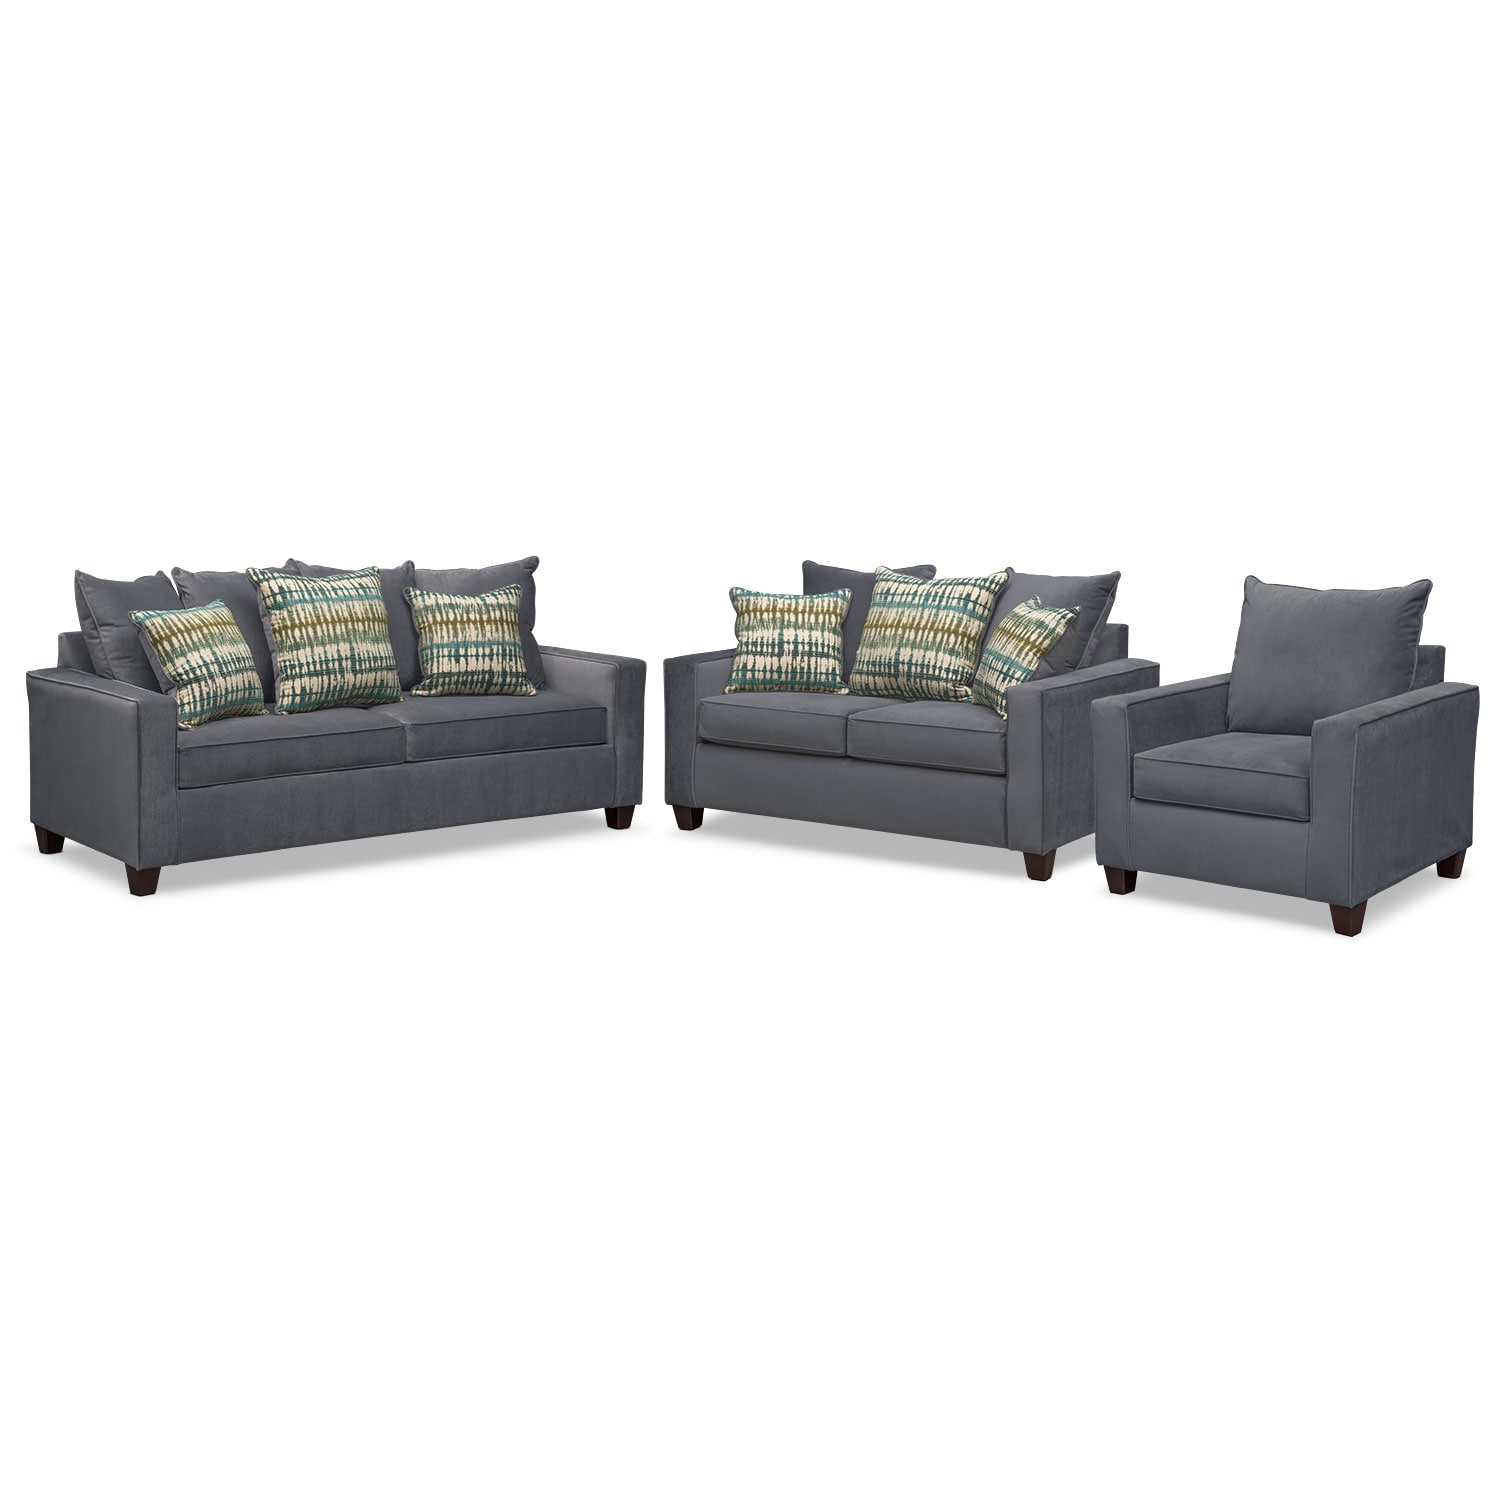 Living Room Furniture - Bryden Sofa, Loveseat and Chair Set - Slate